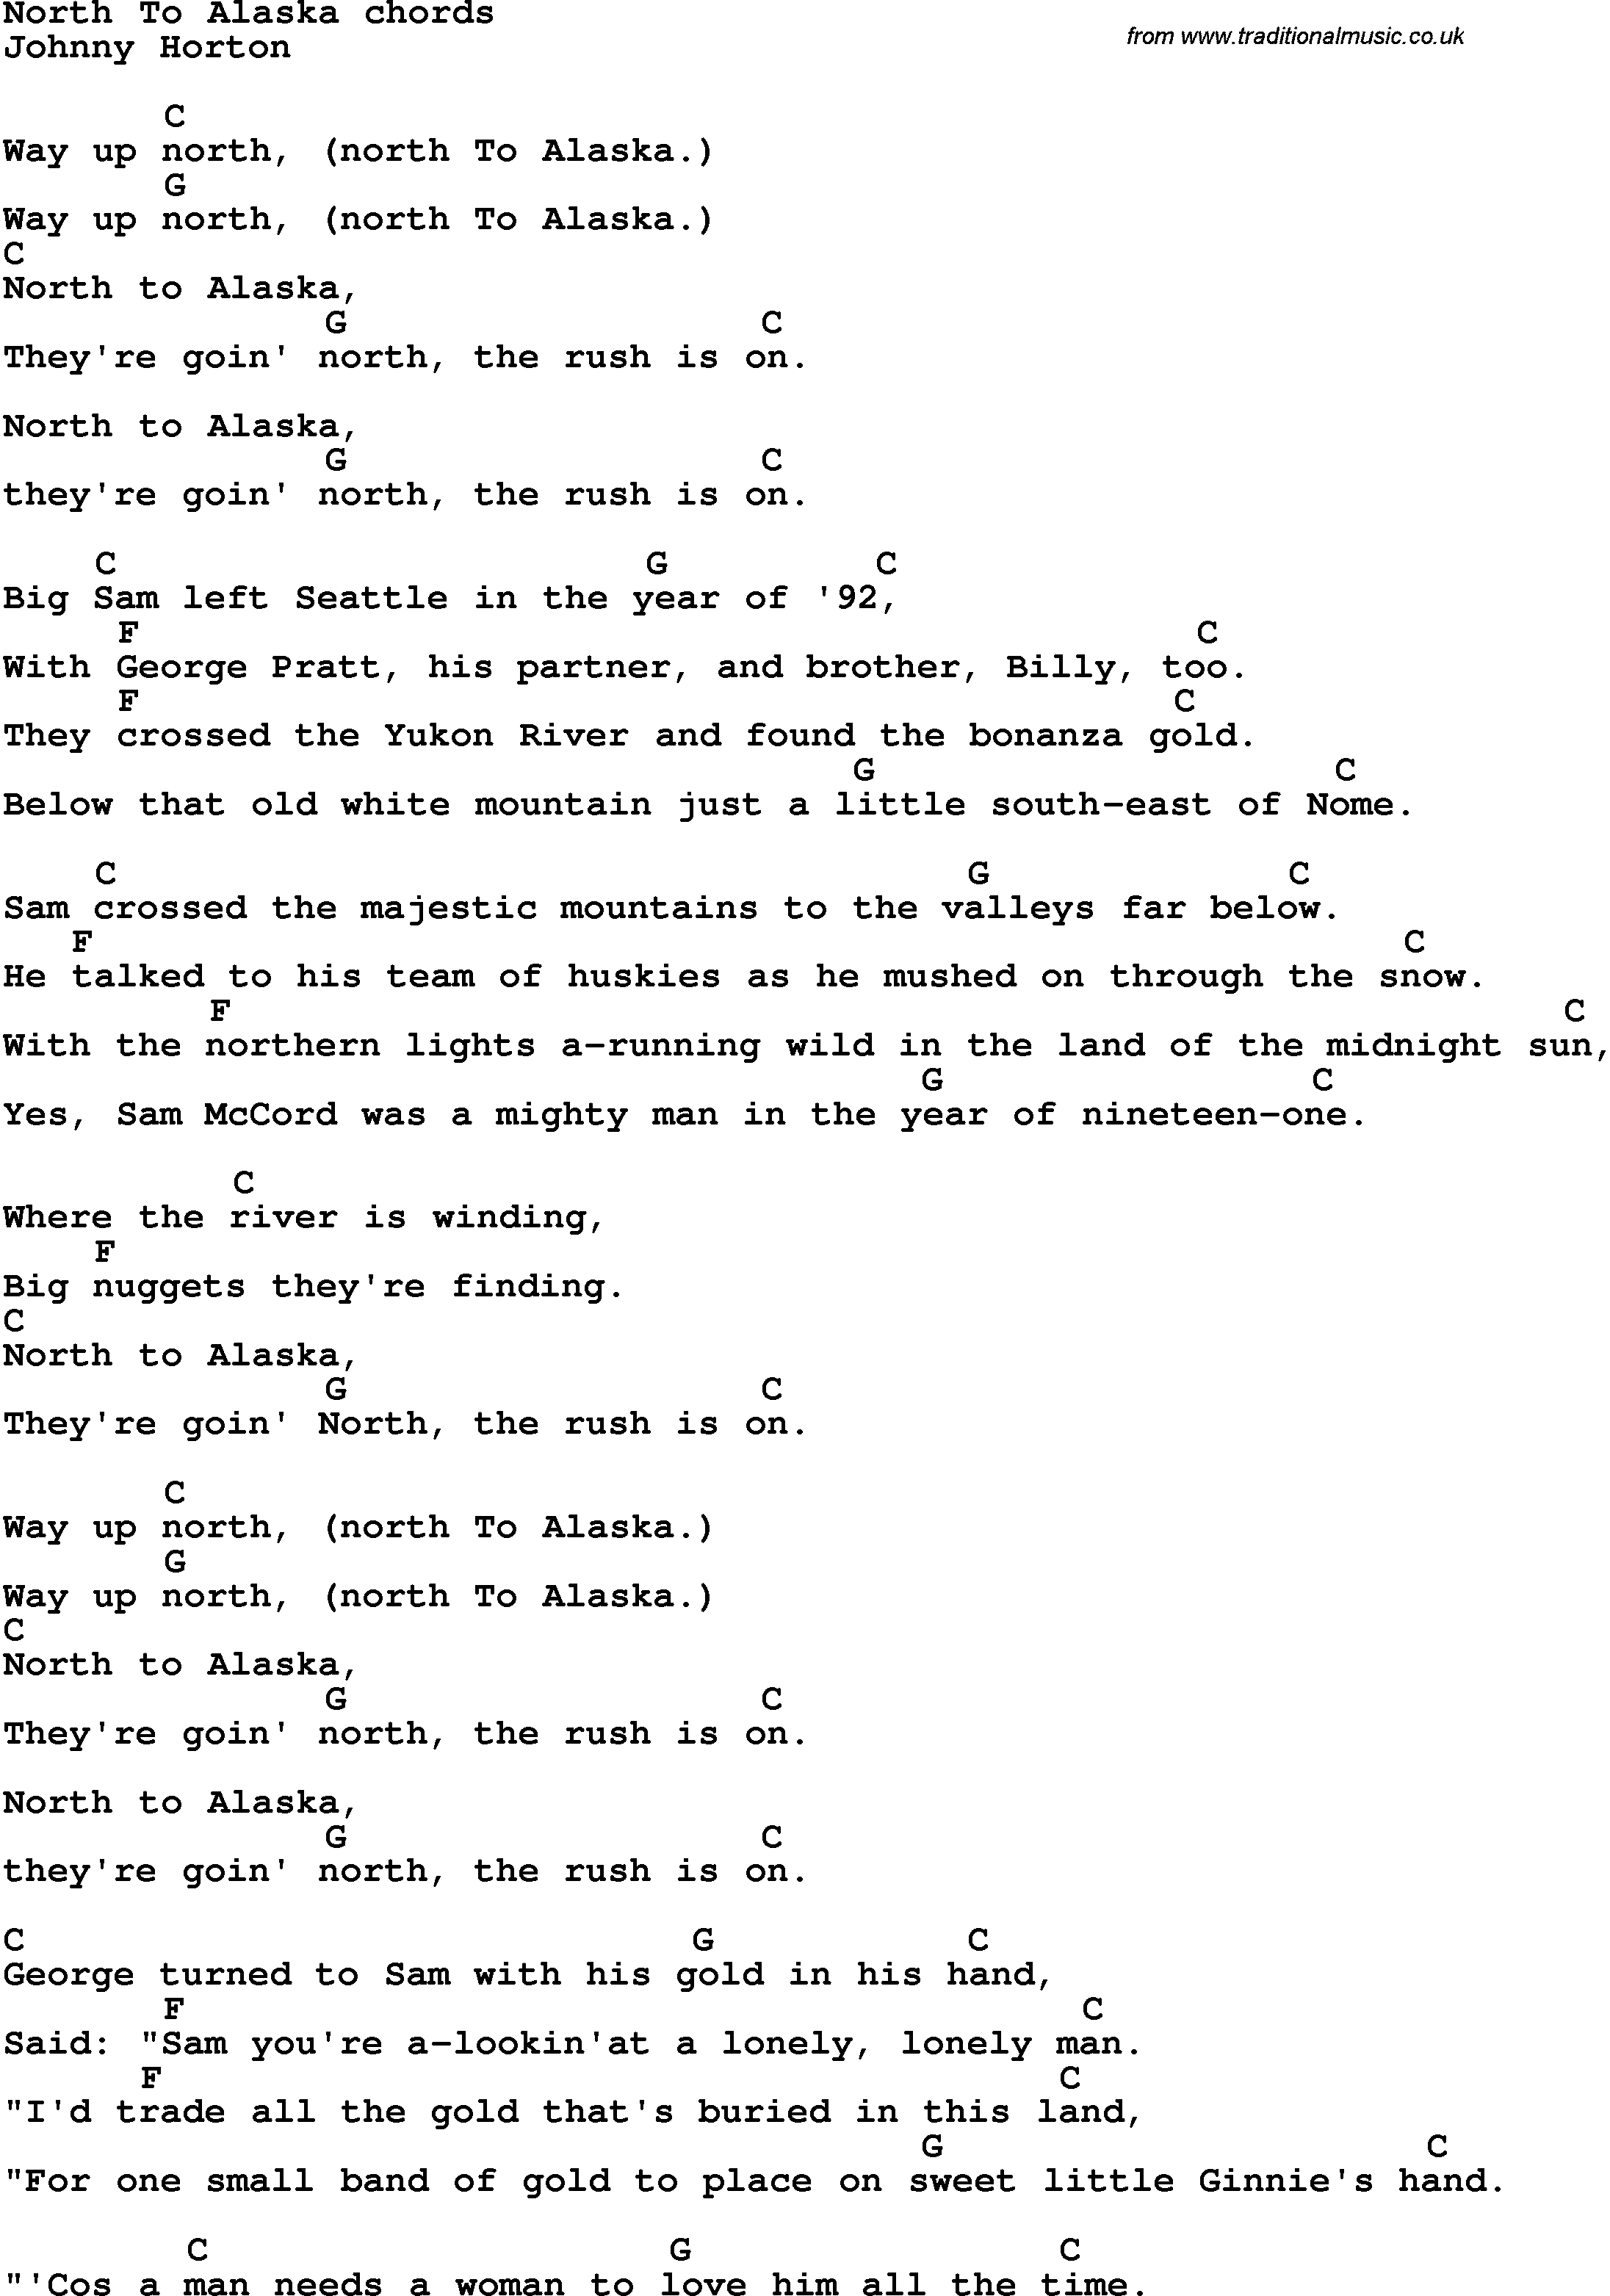 Song Lyrics With Guitar Chords For North To Alaska